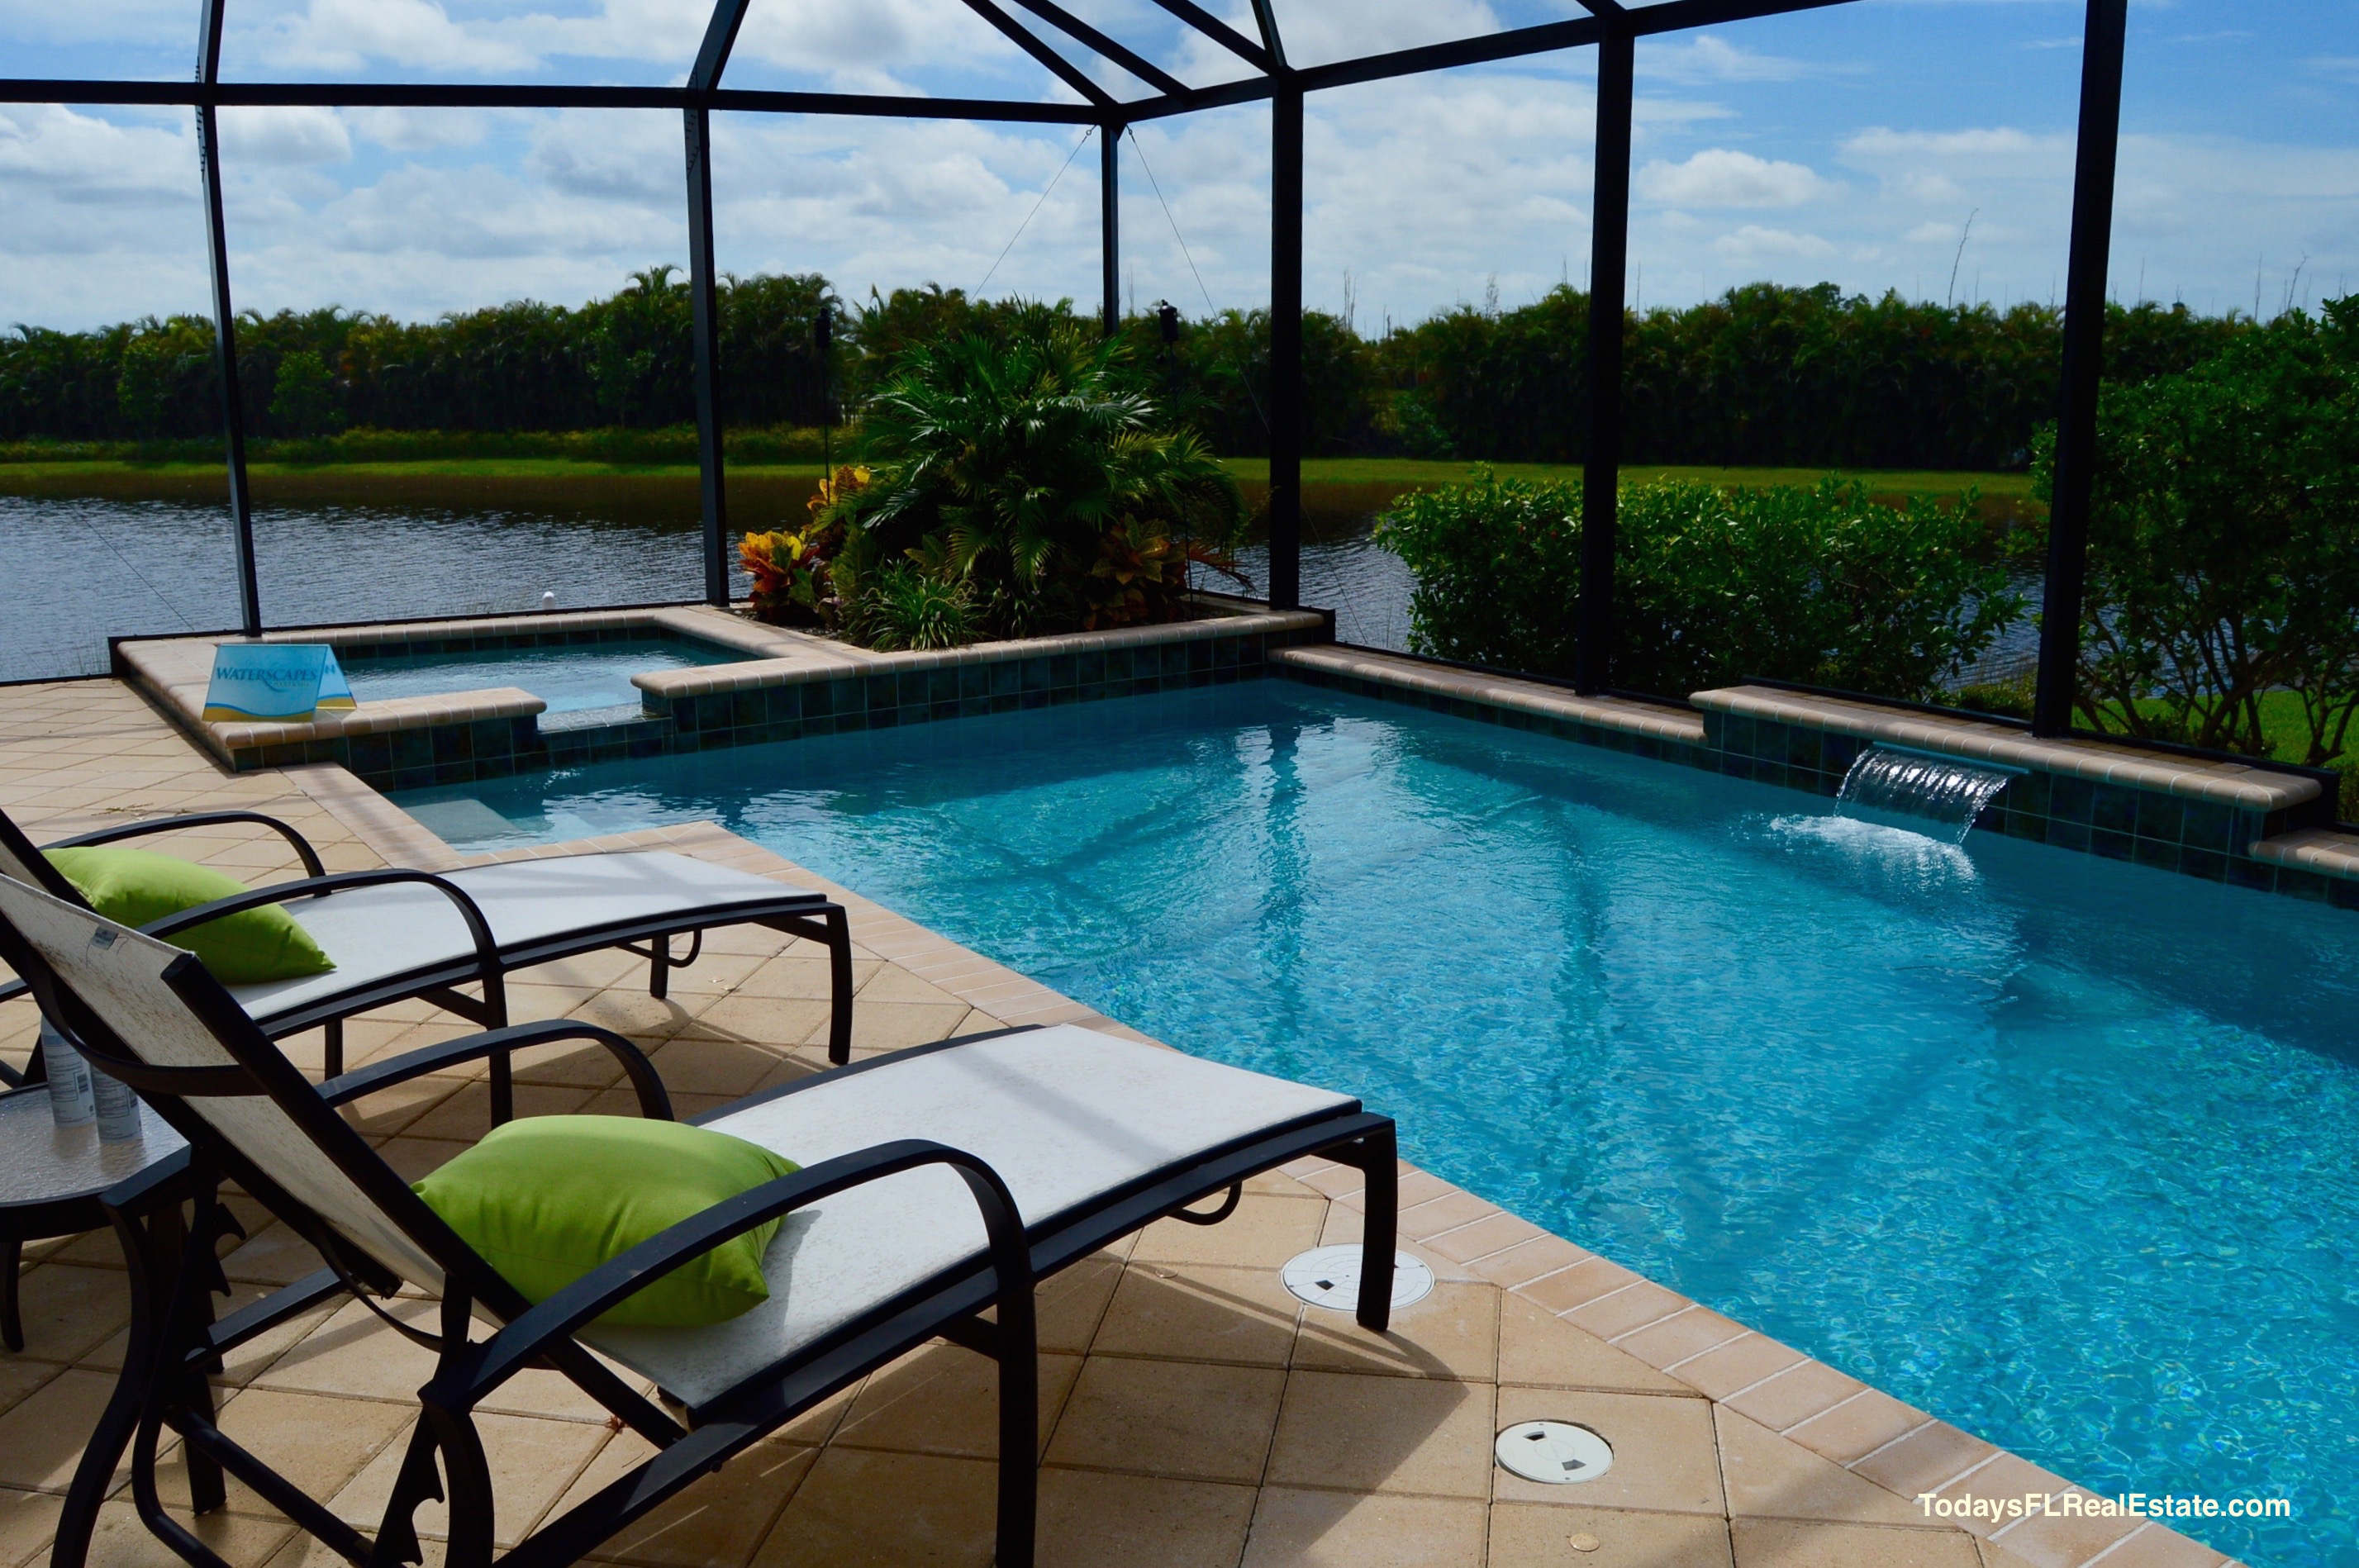 Swimming Pool Homes Cape Coral Cape Coral Real Estate Swimming Pool Homes For Sale